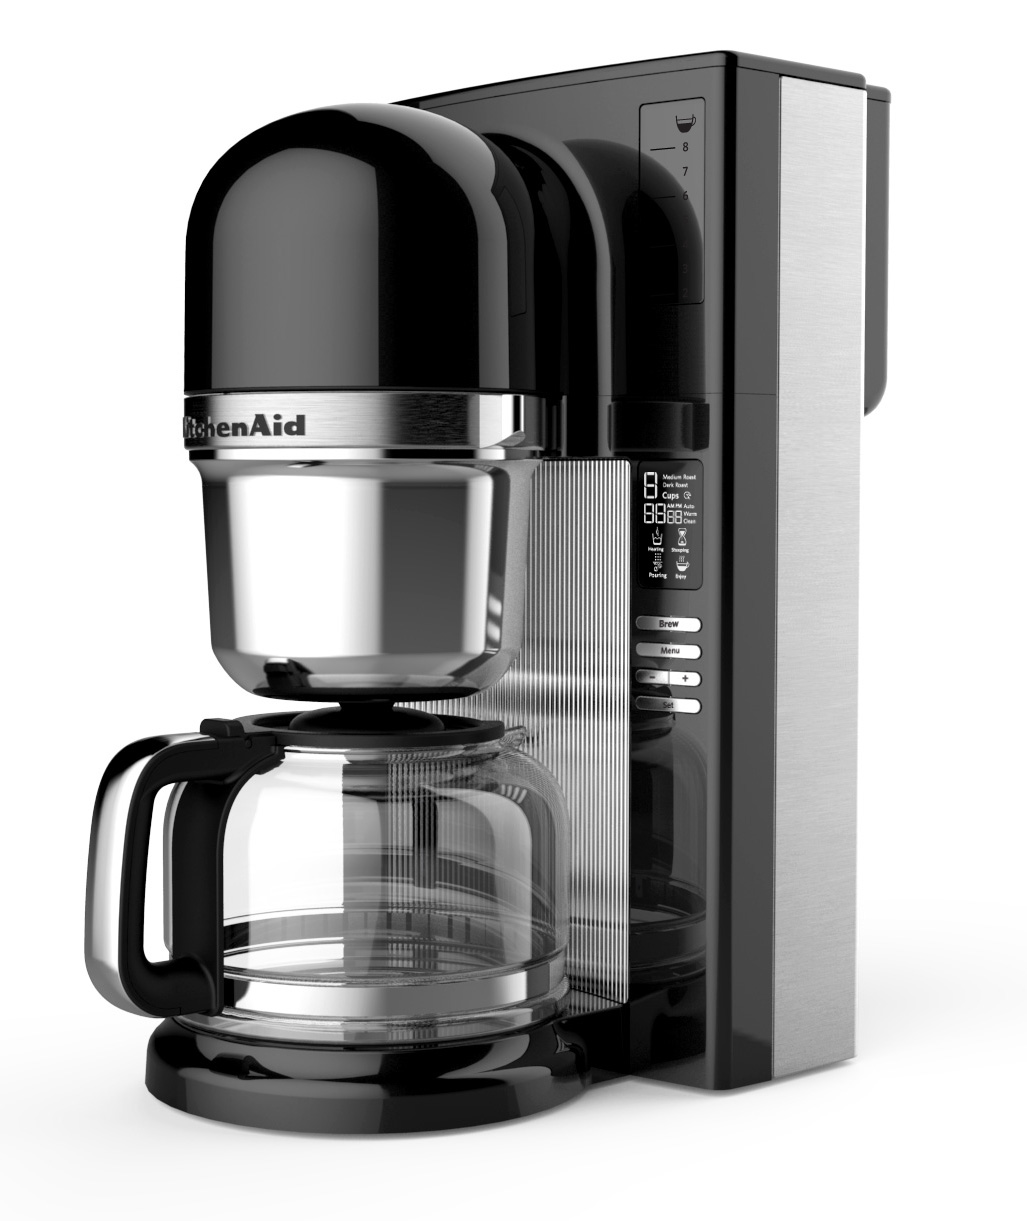 Kitchenaid Coffee Maker How To Use : NEW KITCHENAID COFFEE MAKER BRINGS THE BARISTA HOME GET ...